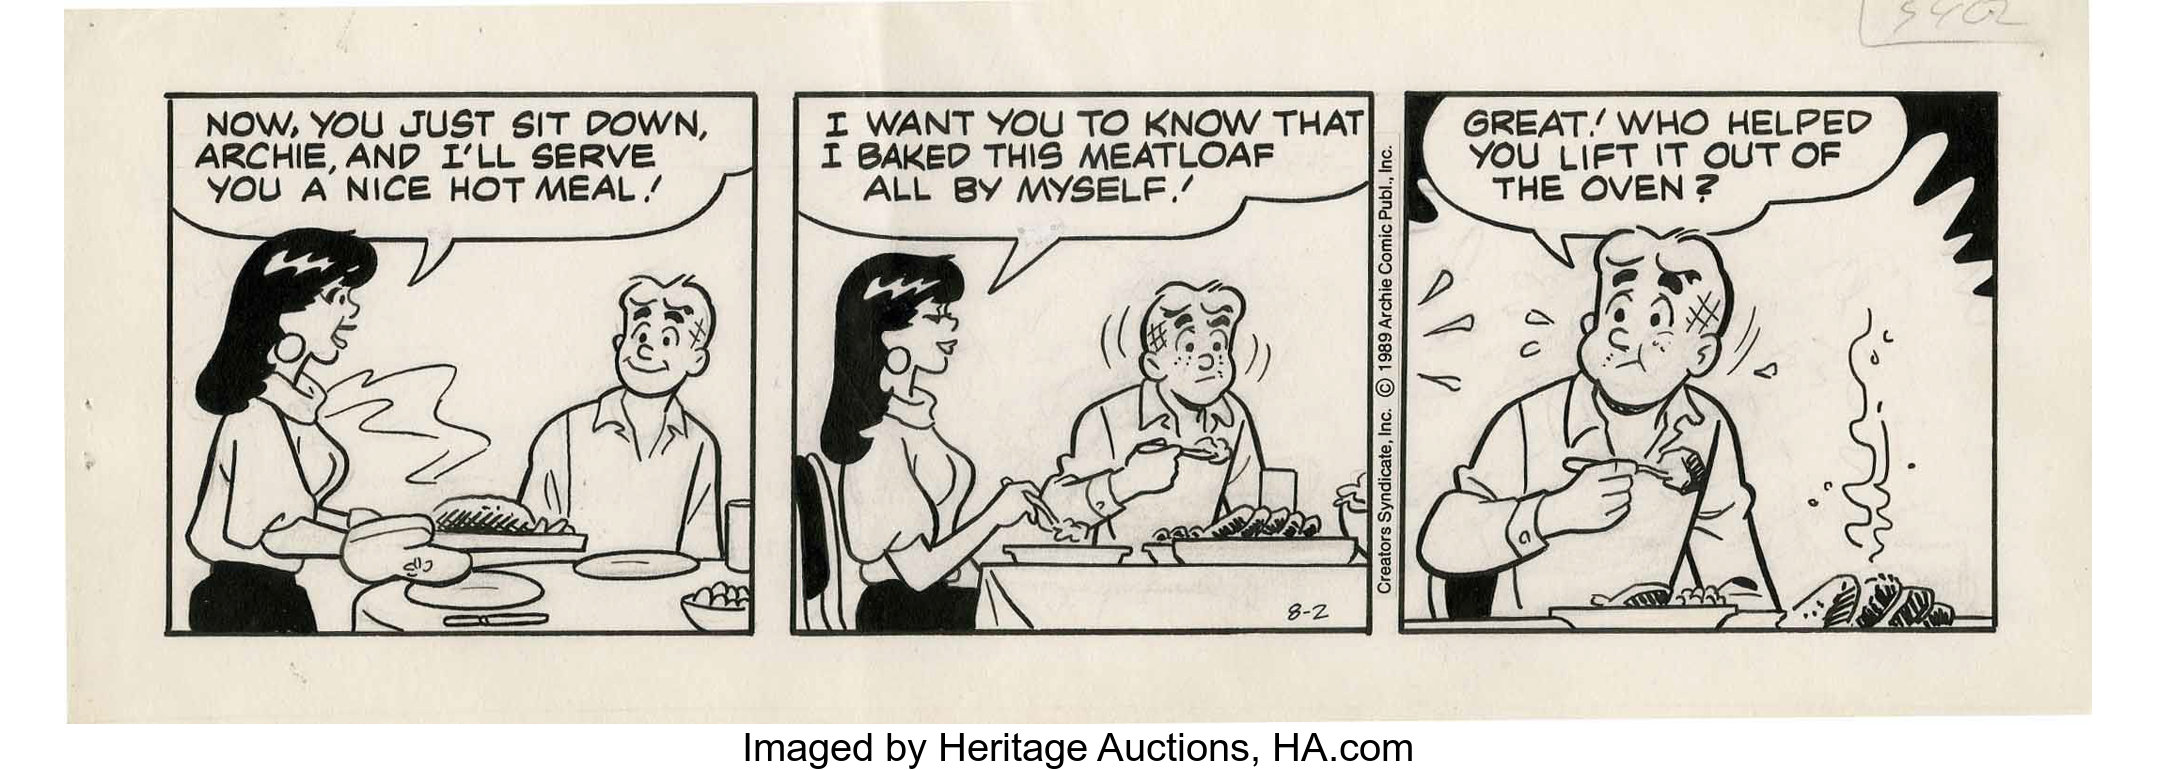 Dan Decarlo Archie Daily Comic Strip Original Art Dated 8 2 89 Lot 17704 Heritage Auctions